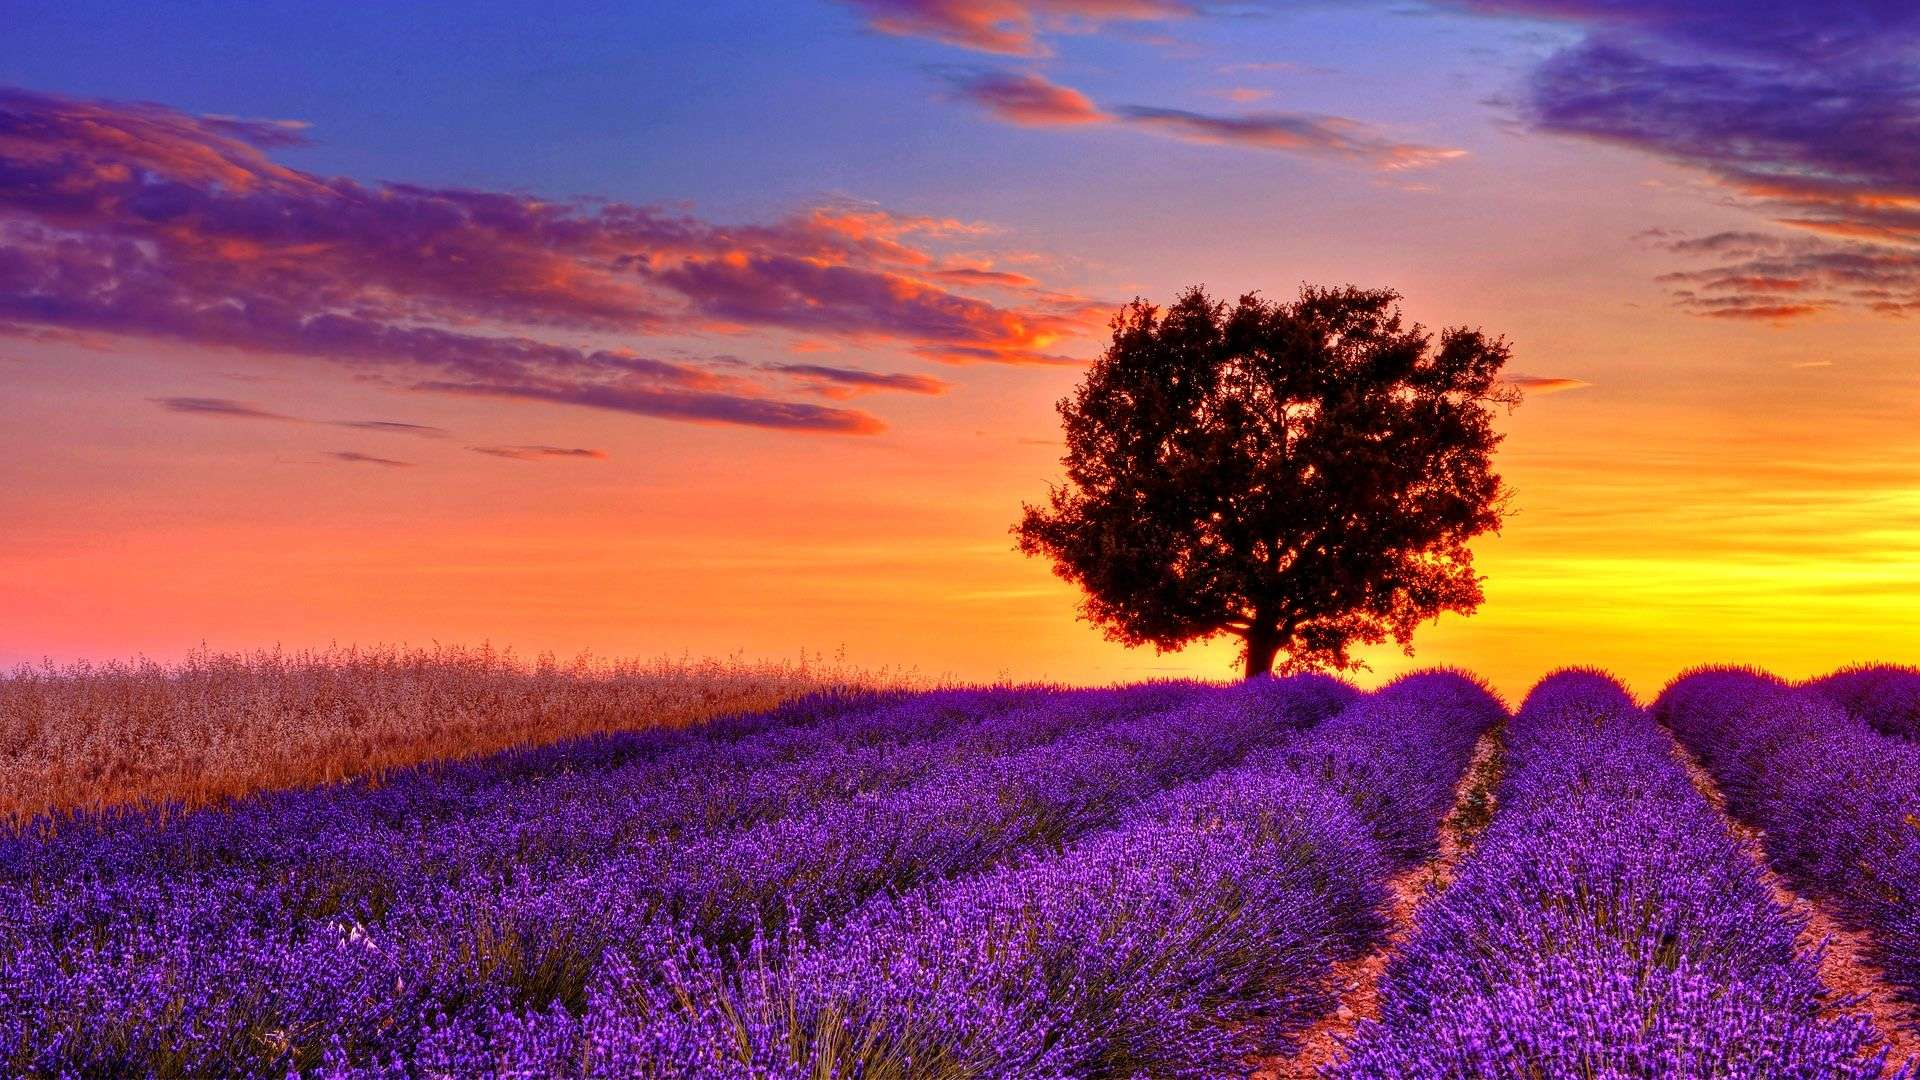 High Resolution Wallpaper: Lavender-flower-field-sunset-high-resolution-wallpaper-for